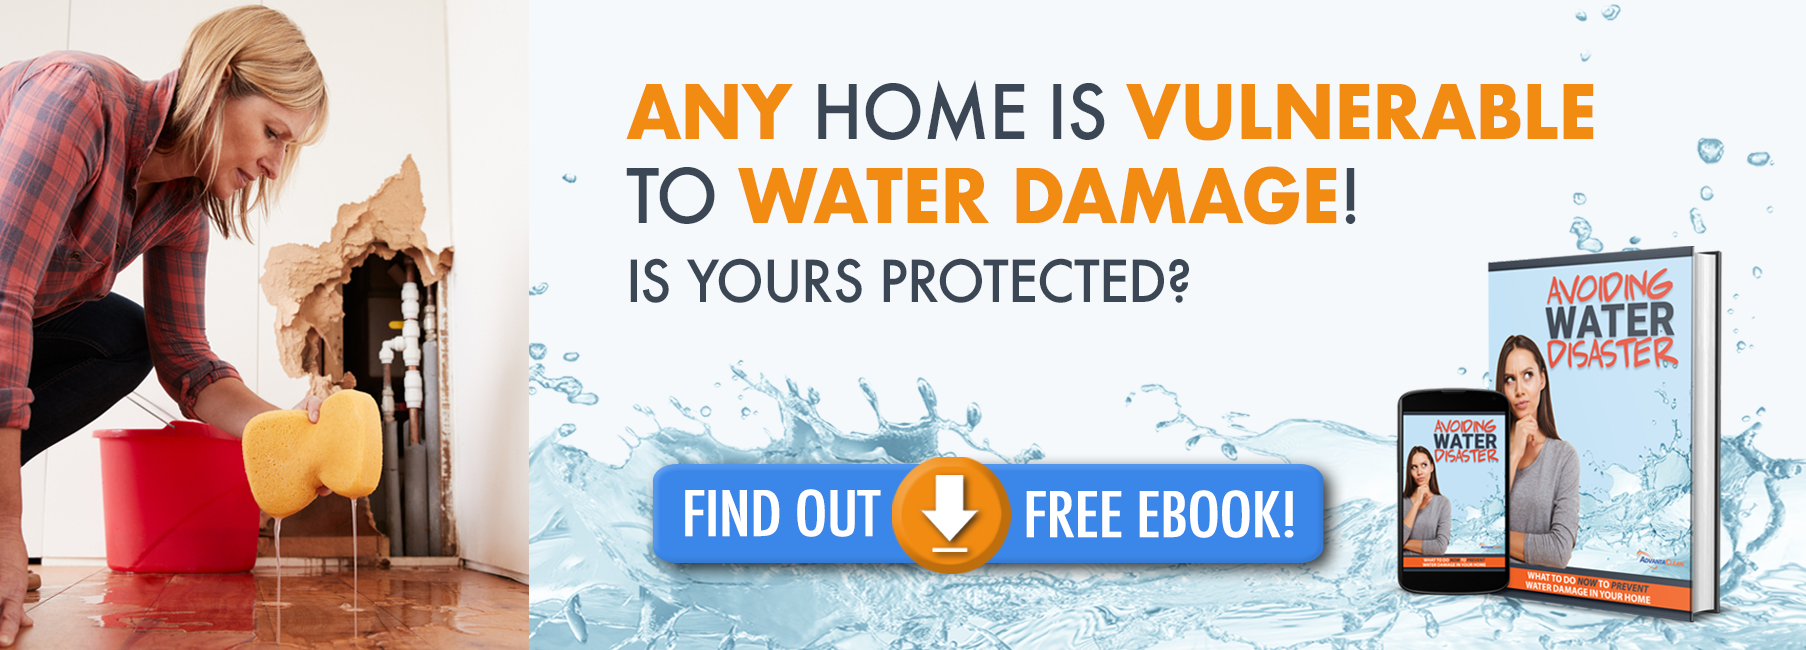 Your home could be vulnerable to water damage, find out how to protect it!